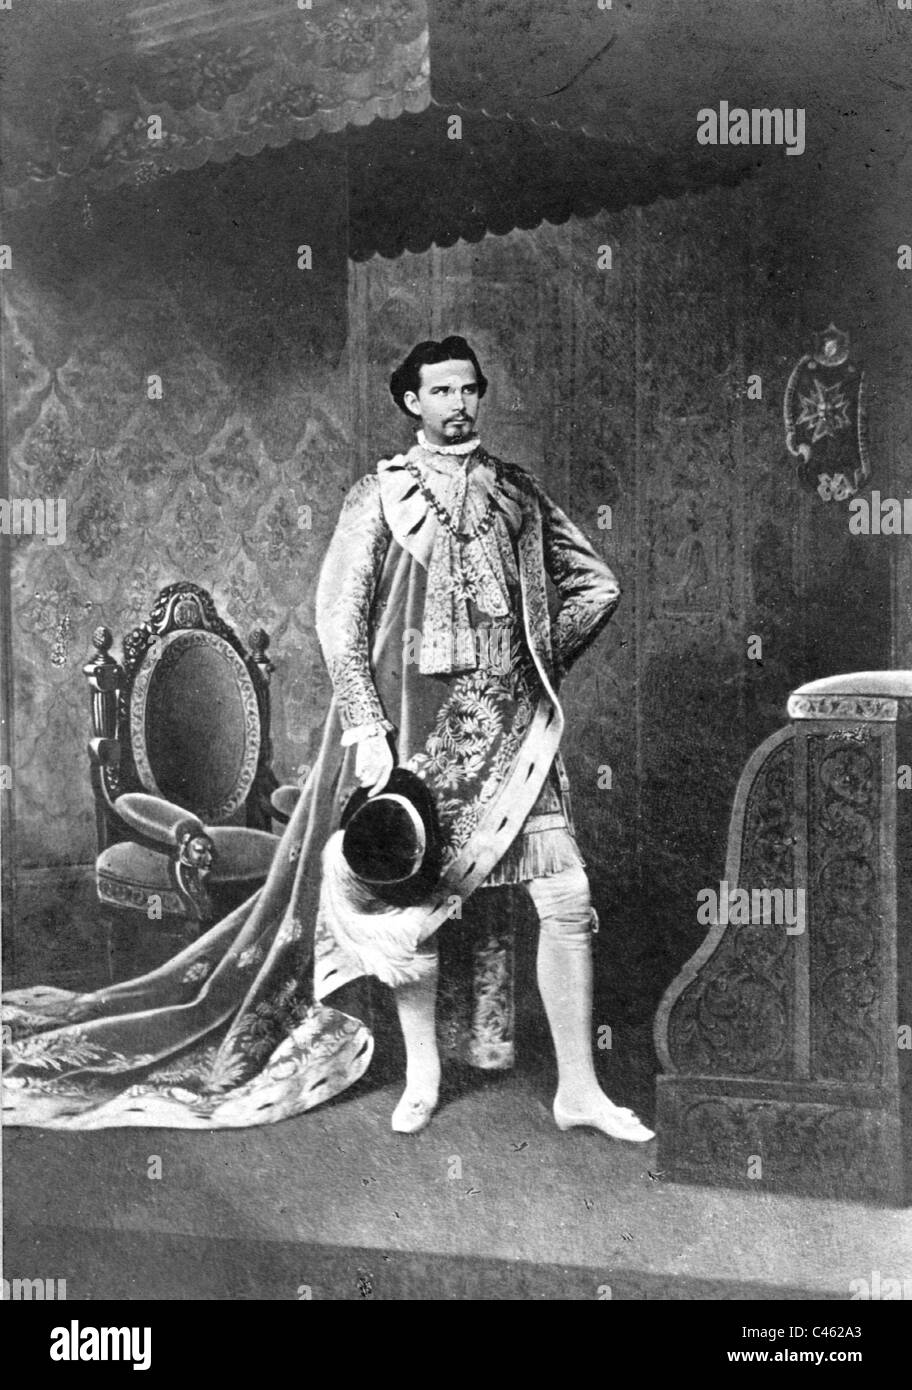 King Ludwig II. of Bavaria - Stock Image